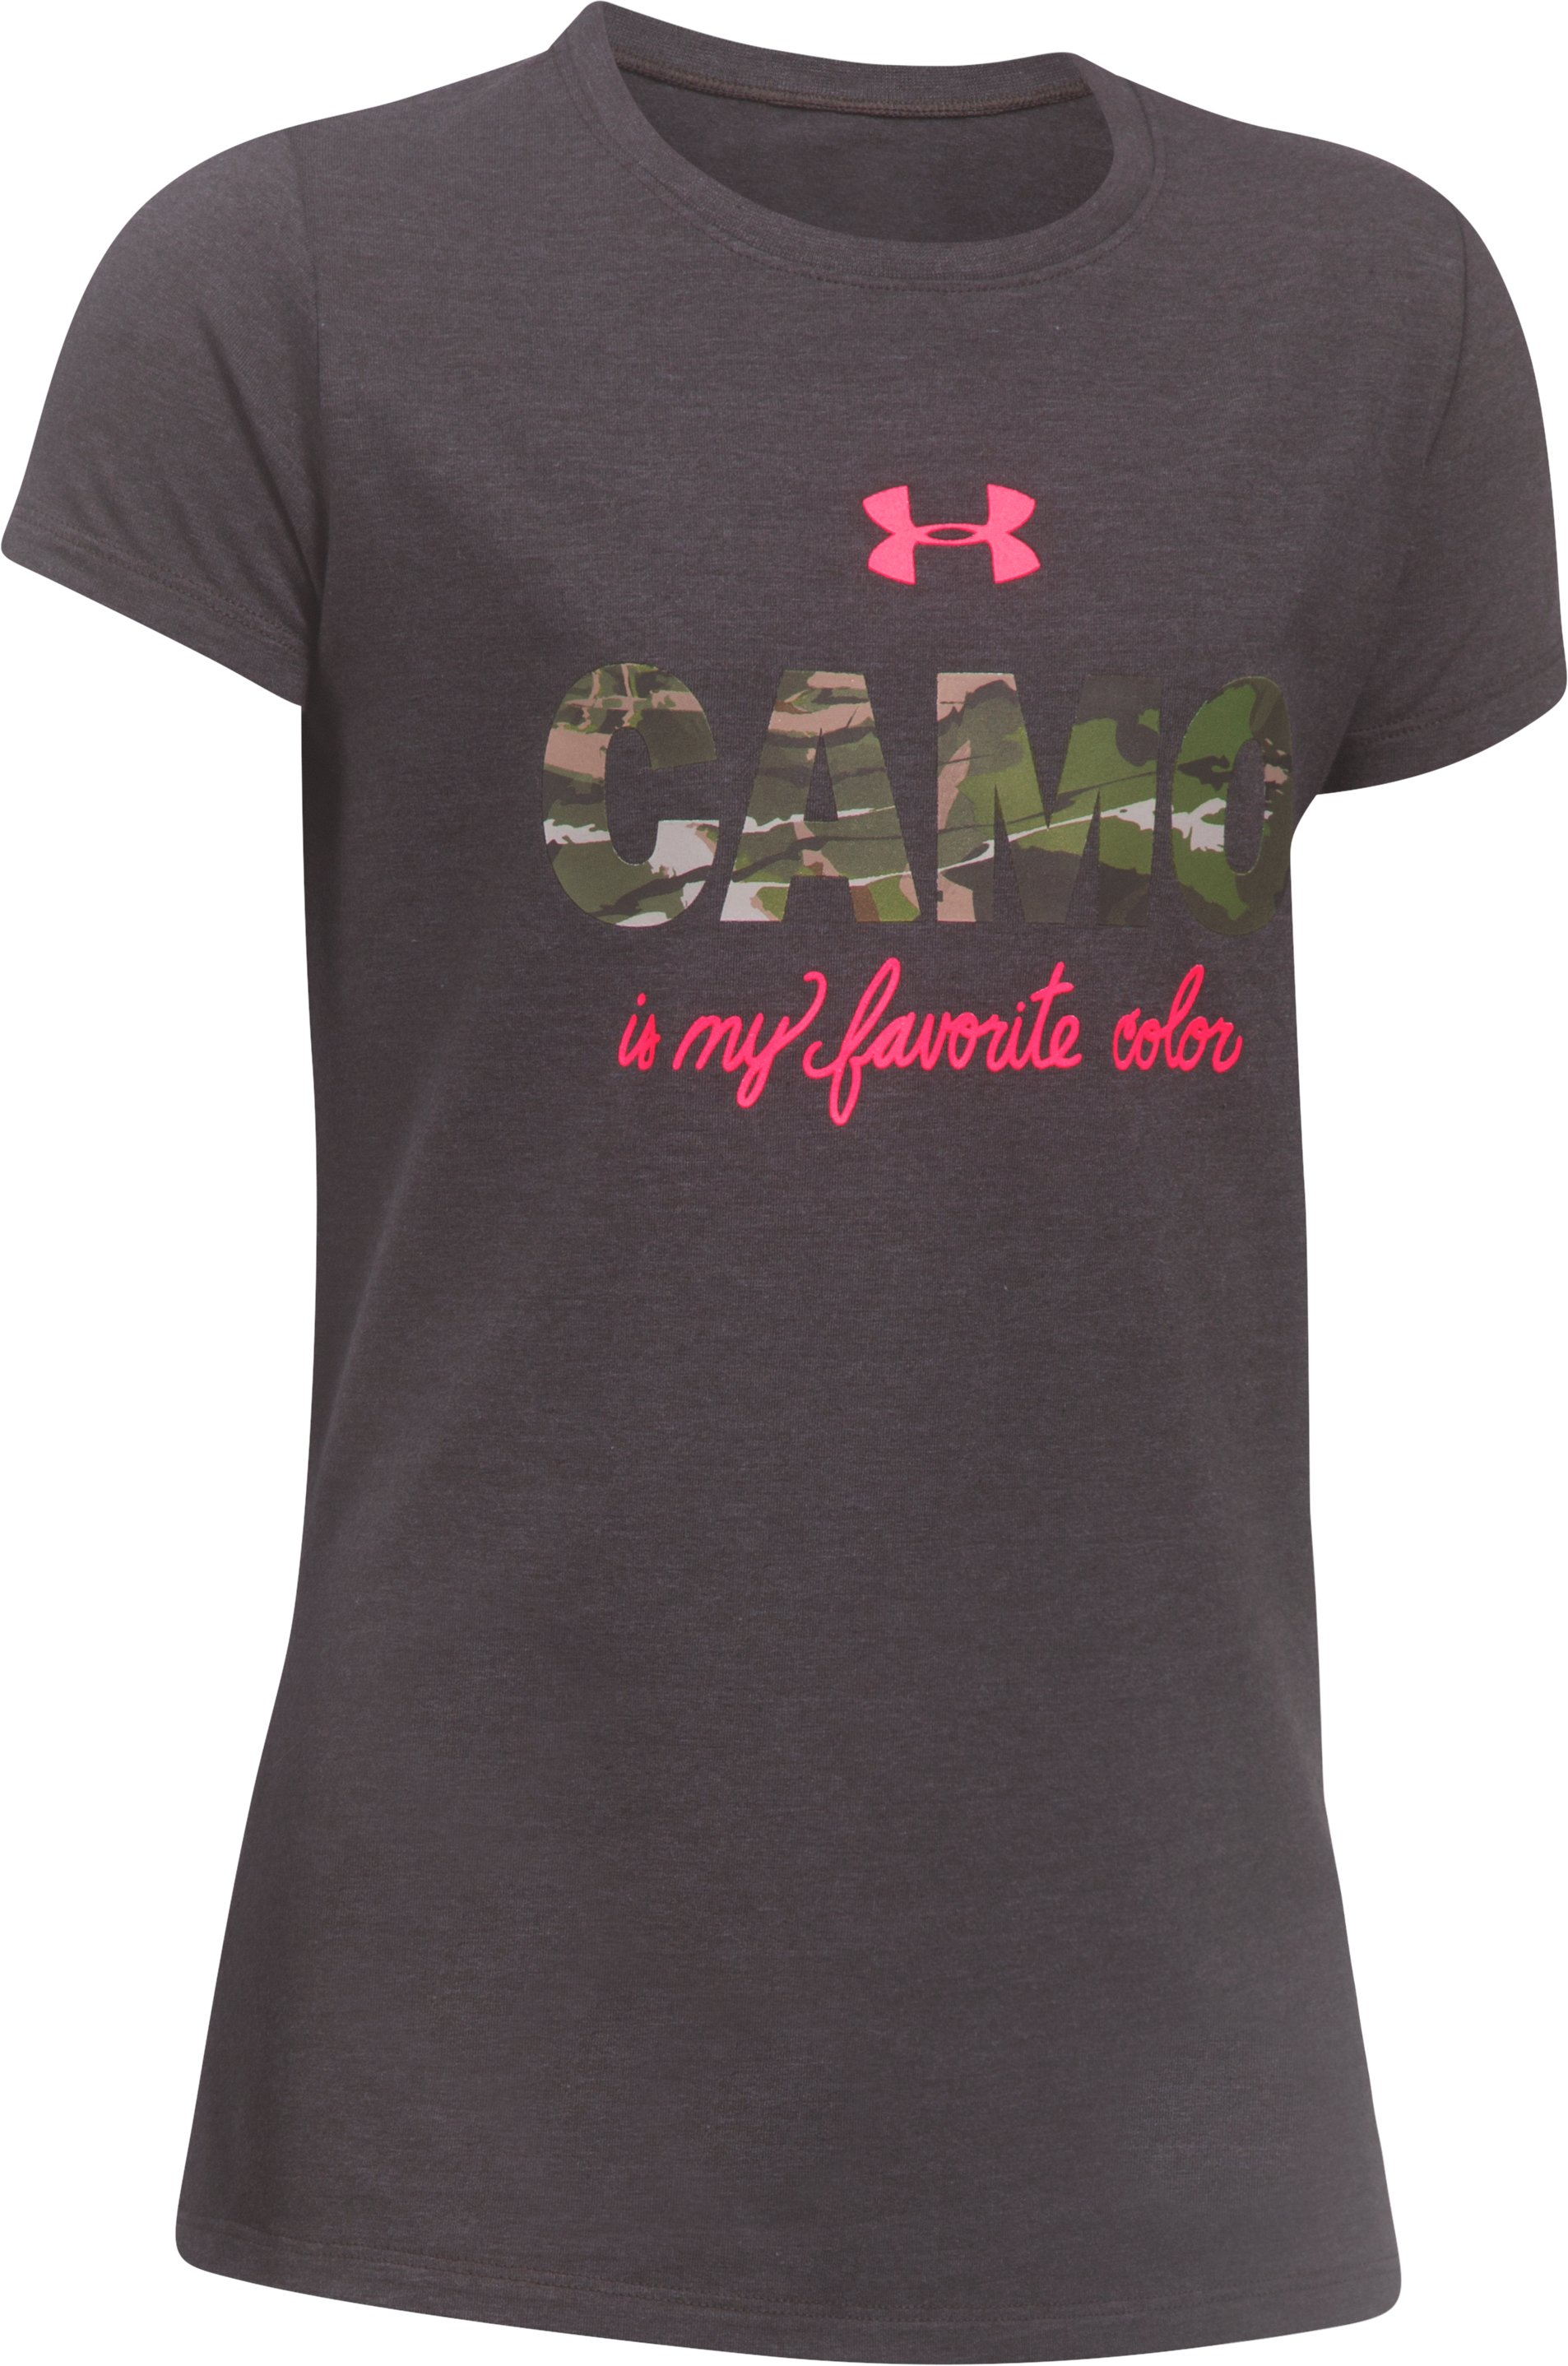 Girls' UA Camo Favorite T-Shirt, CHARCOAL MEDIUM HEATHER, undefined